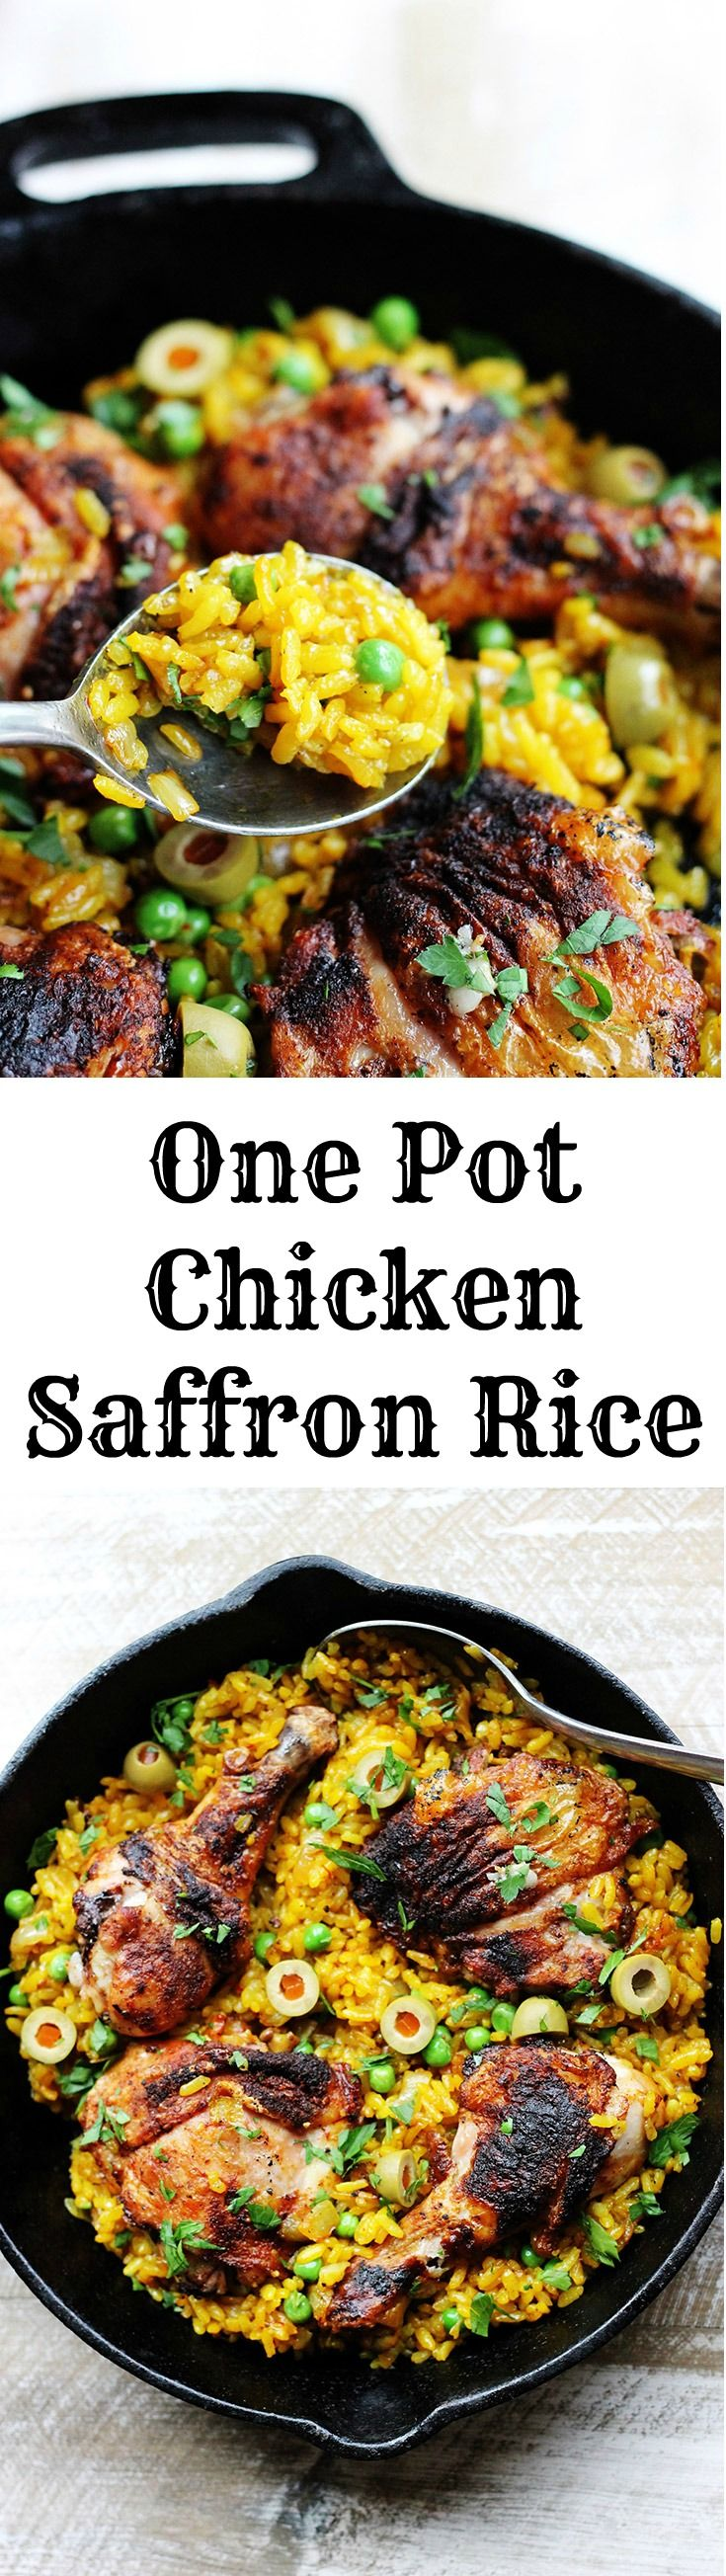 One pot chicken saffron rice with saffron, peas, olives and Piementon is an easy weeknight meal that requires minimal work. The oven does the job for you.